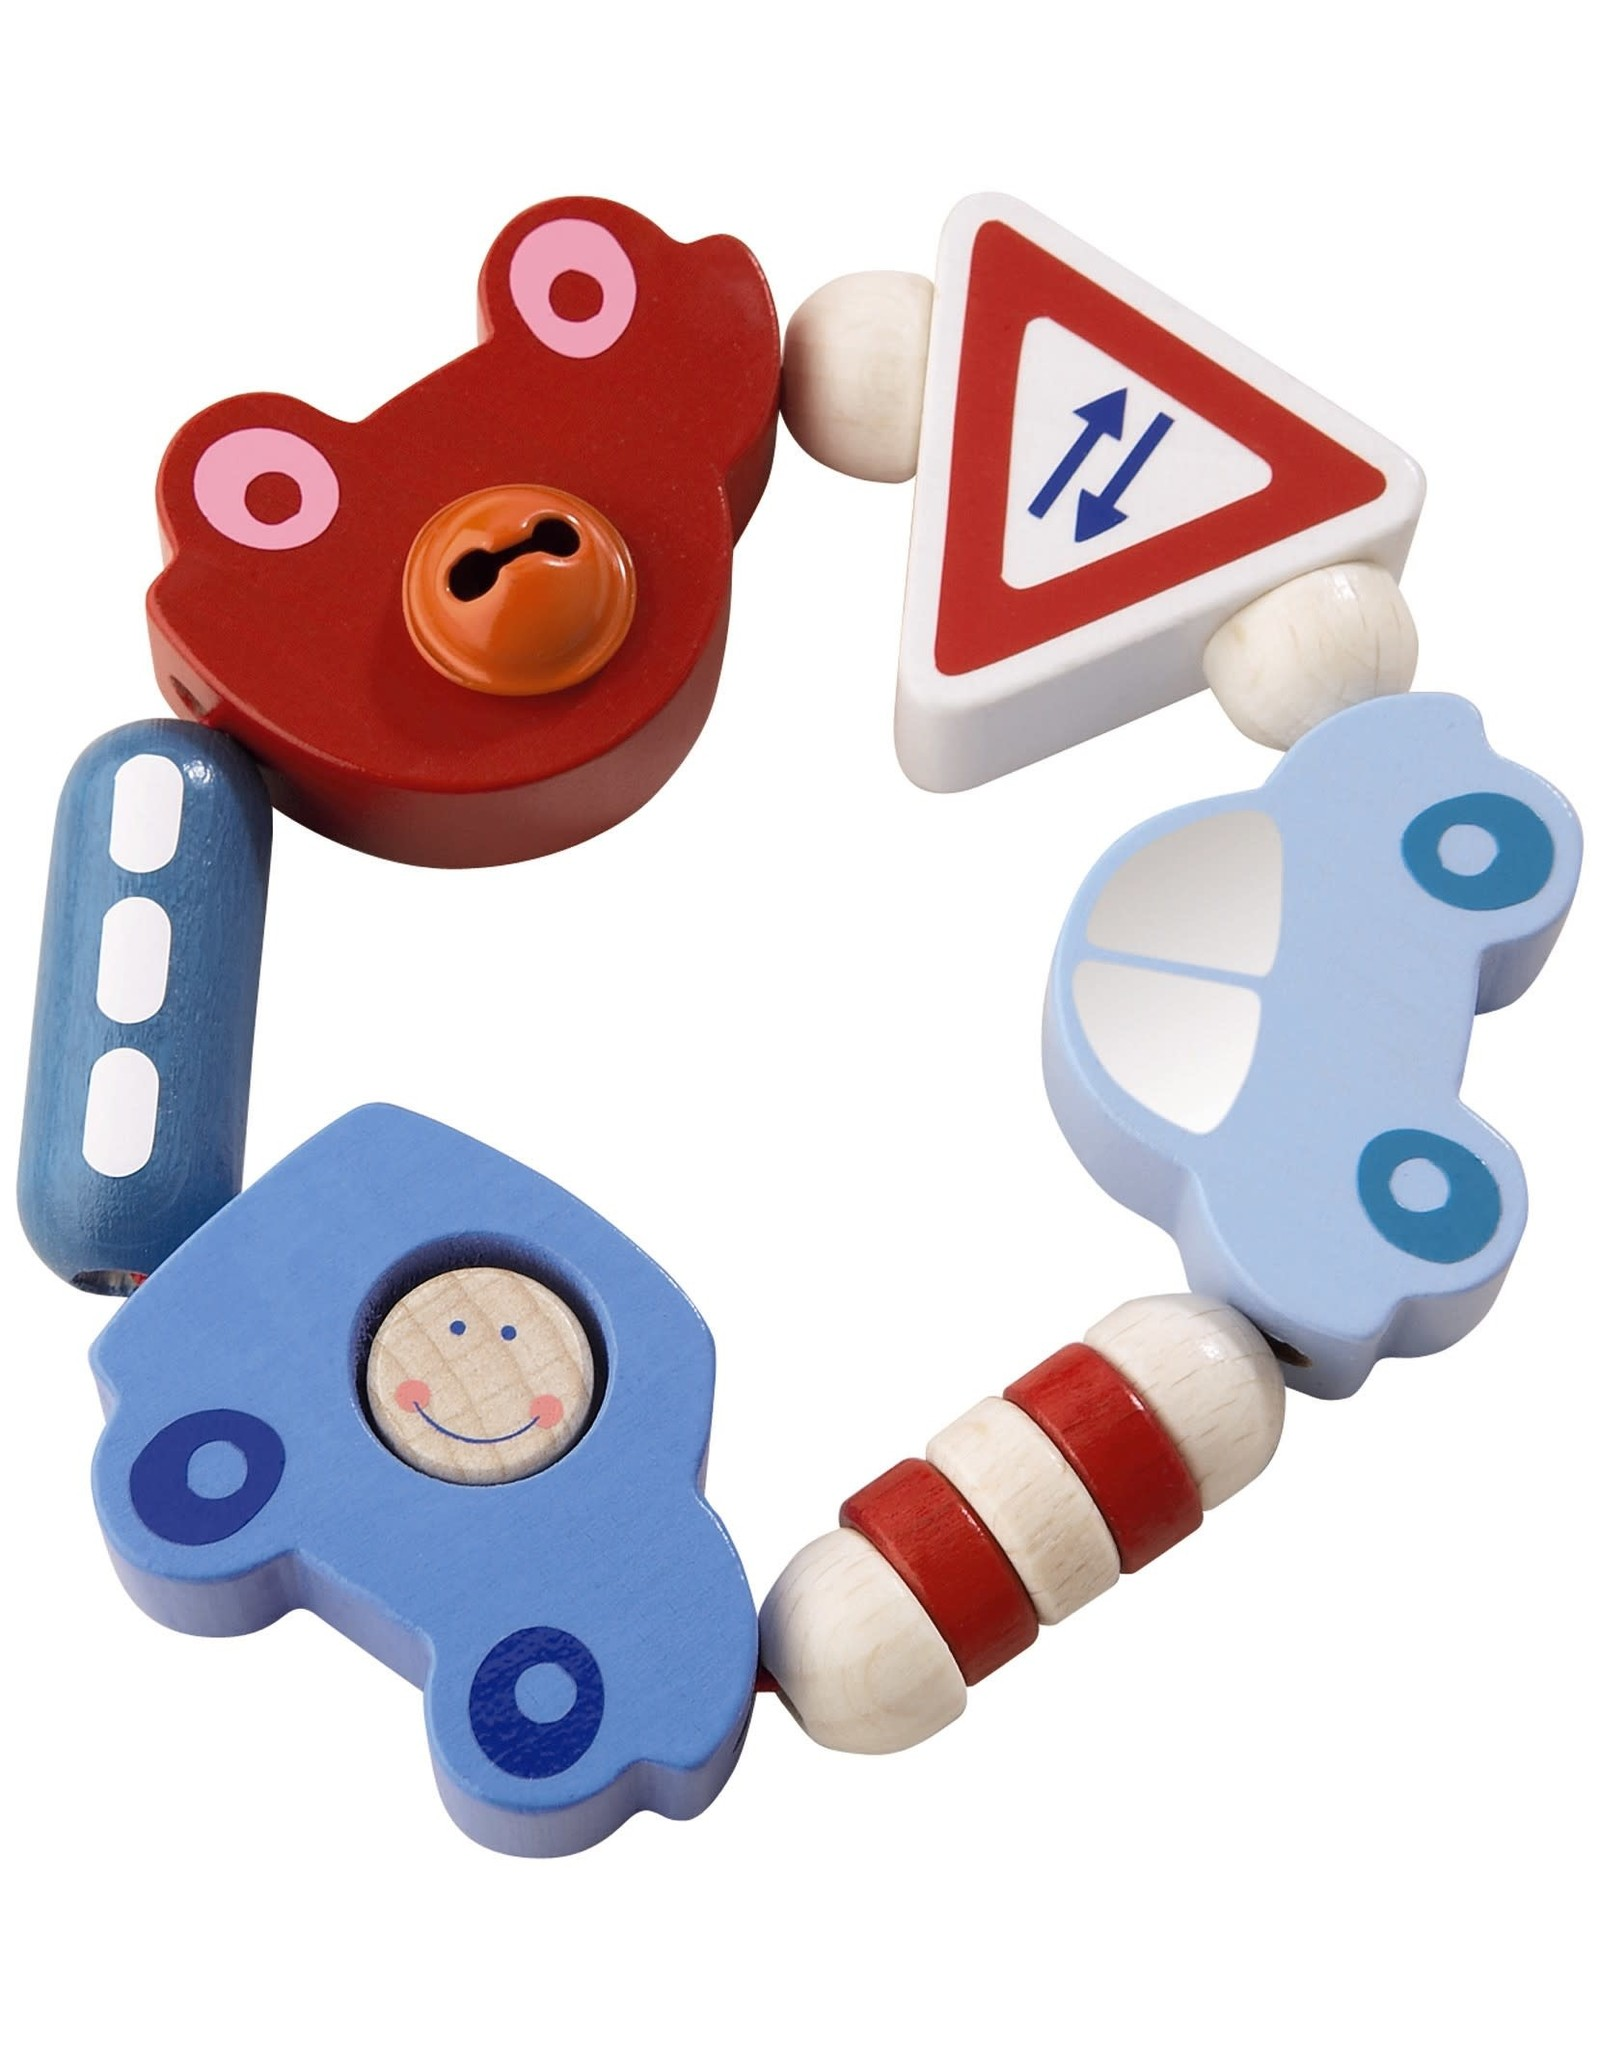 Haba Clutching Toy - Toot-toot